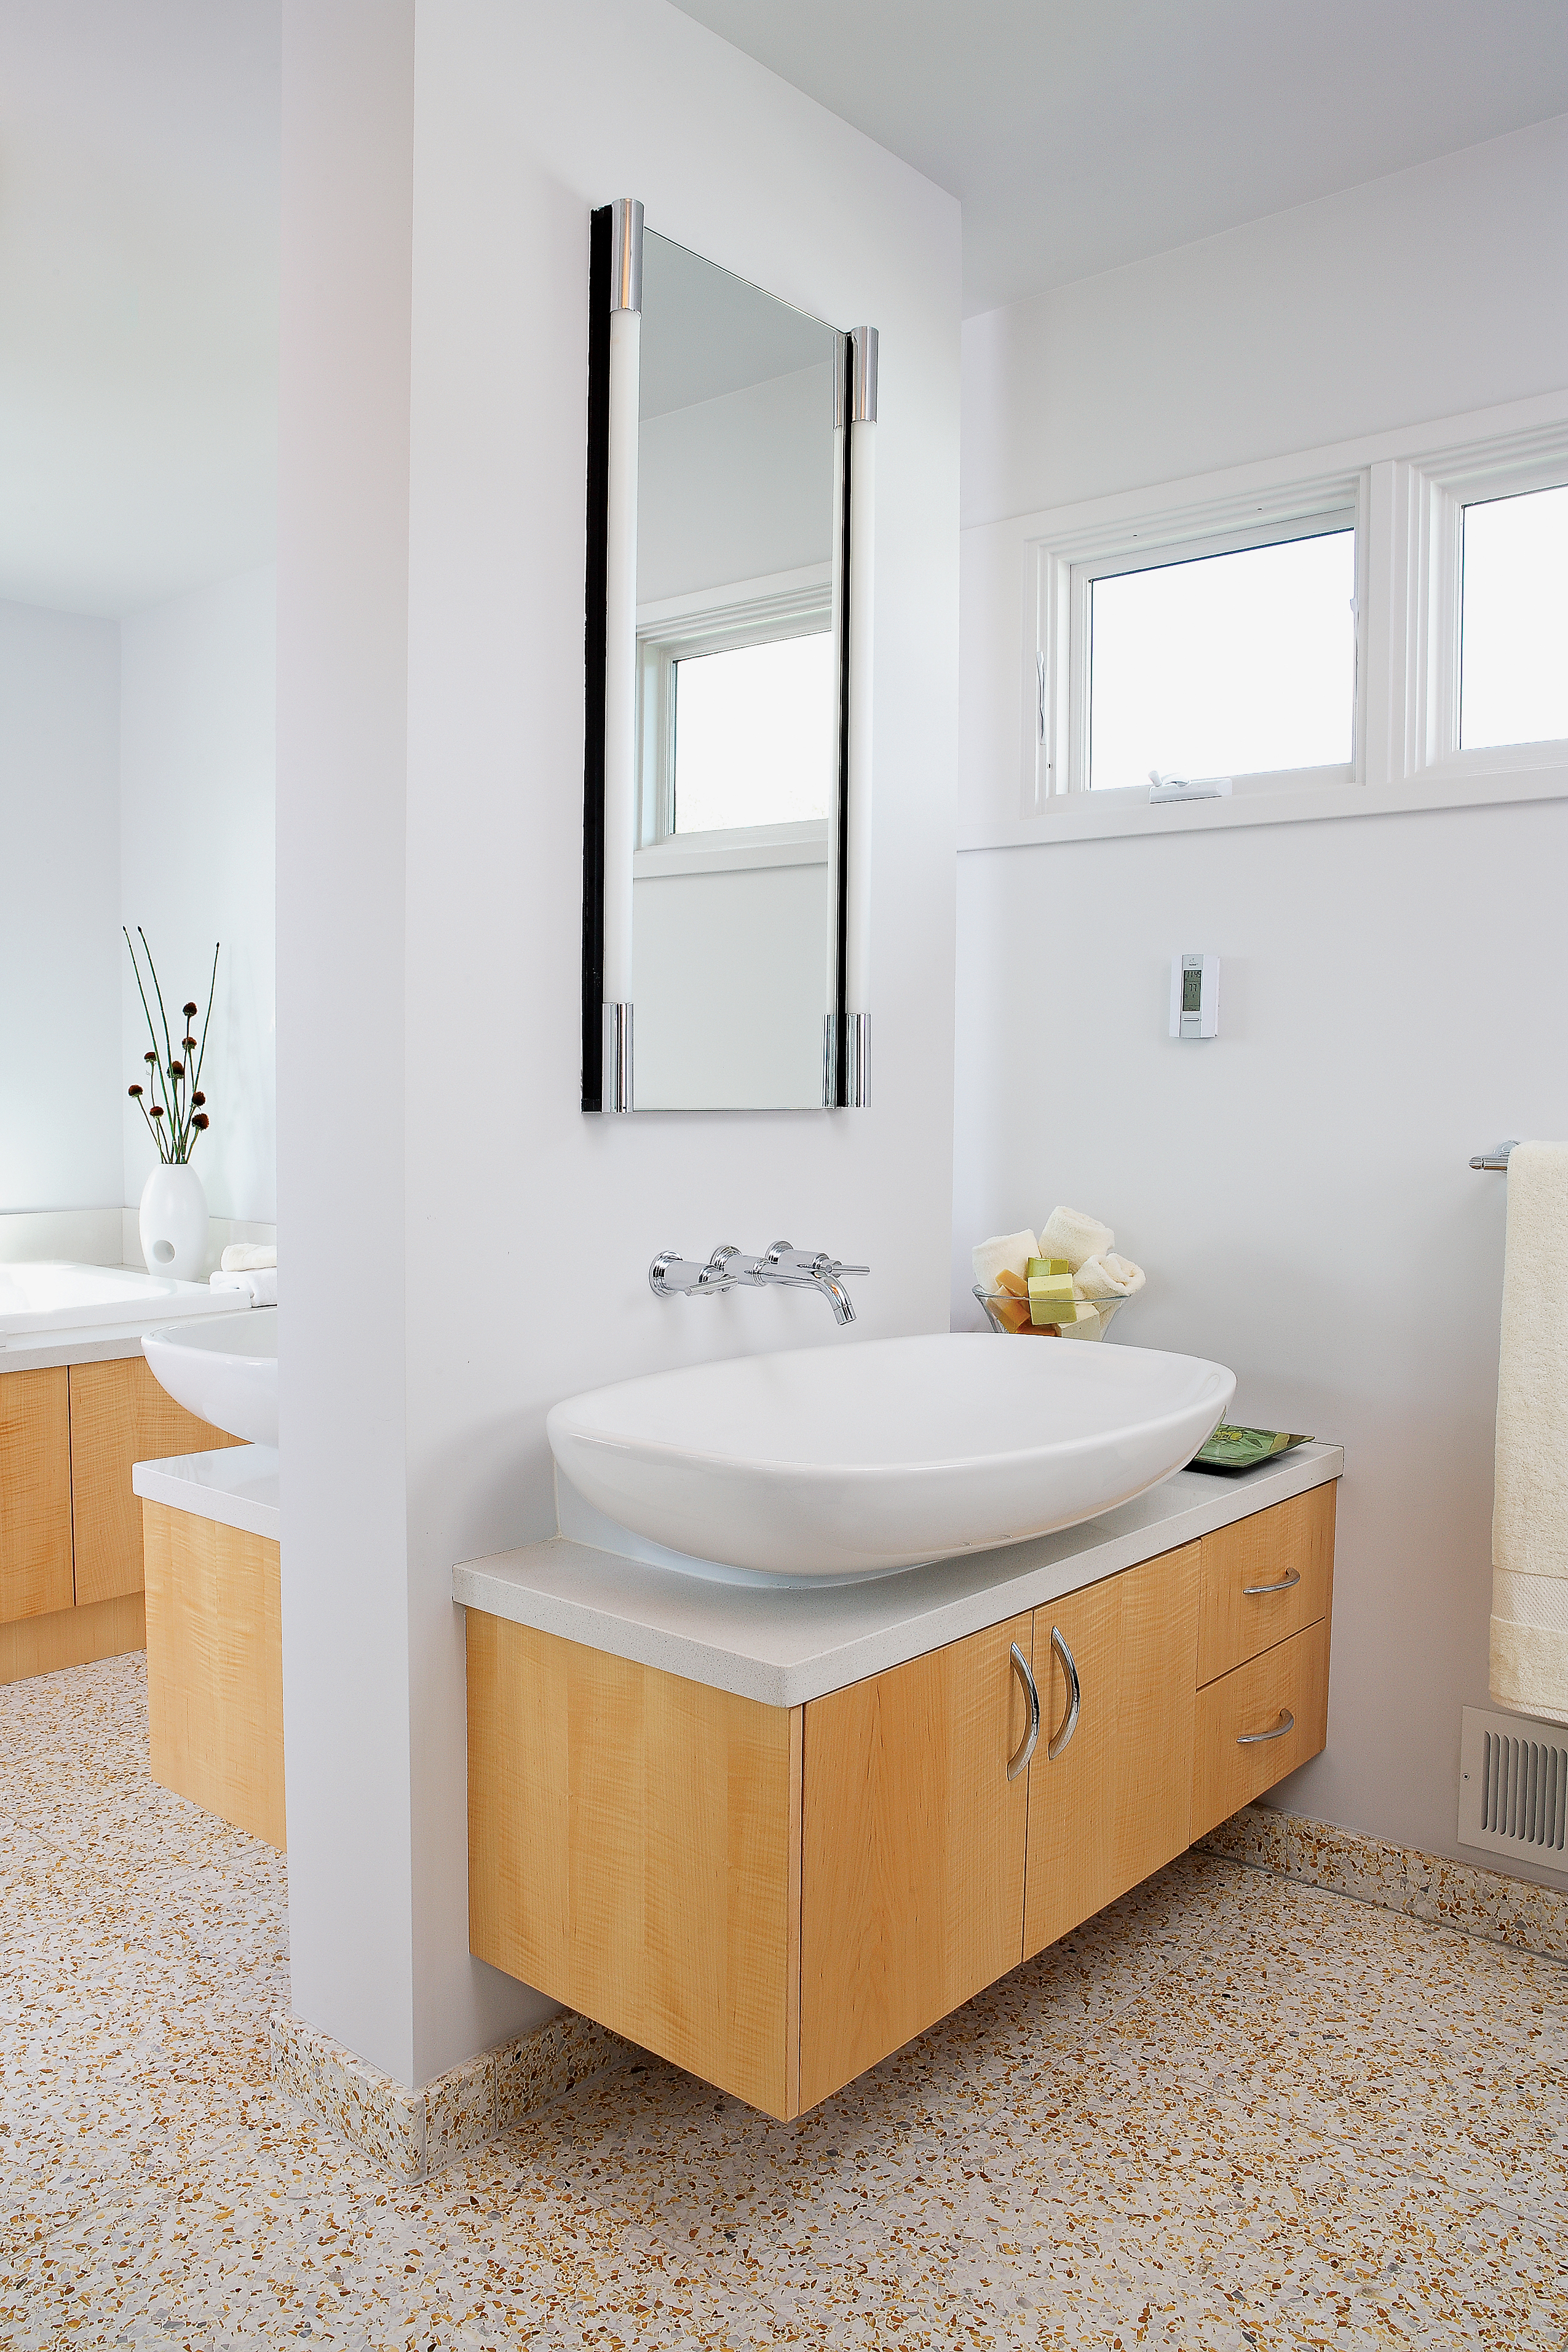 Bathroom Vanity, Counter, & Sink Ideas - Sunset - Sunset Magazine